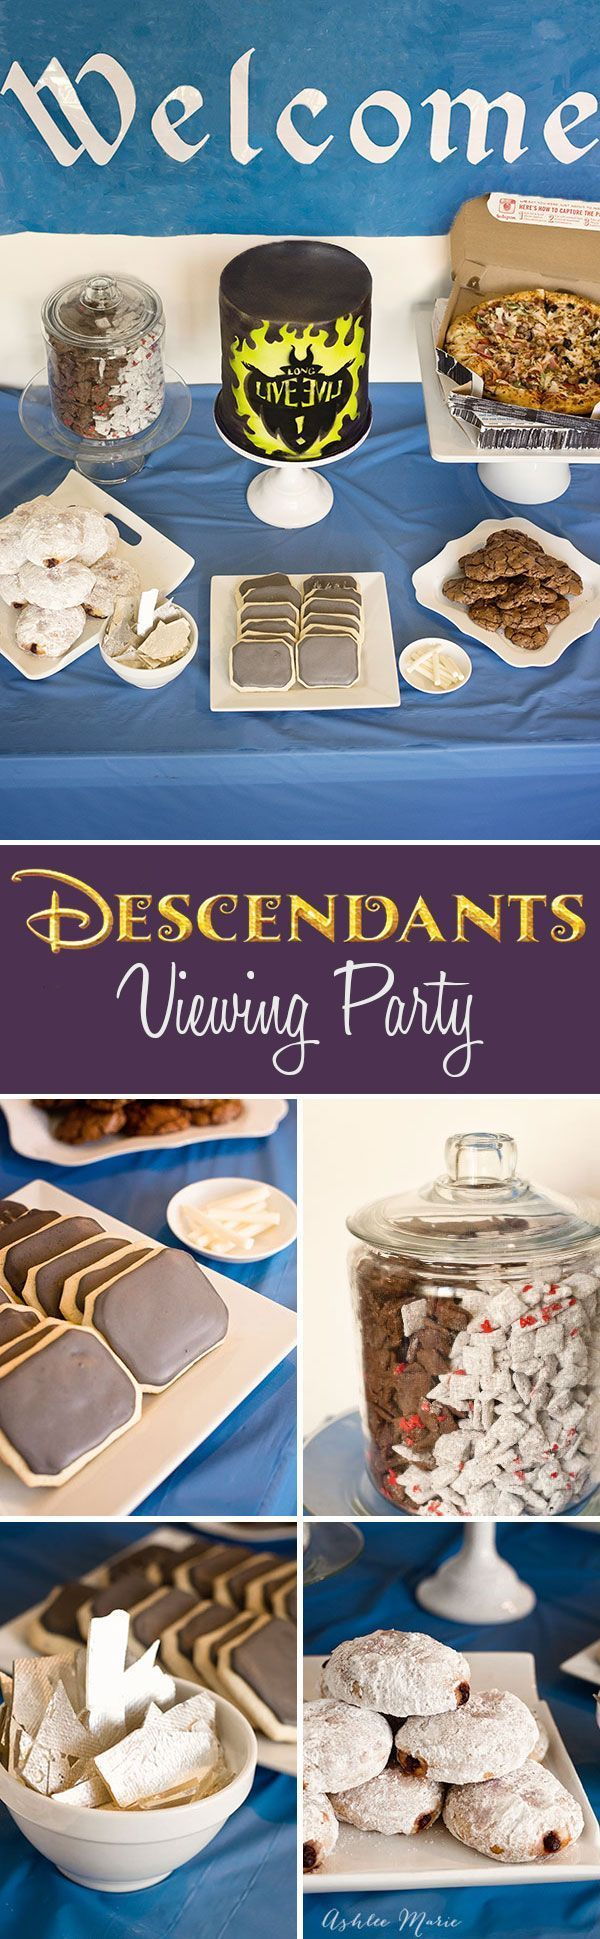 Throw your own party for Disneys Descendants movie, with cookie chalkboards, candy chalk, graffiti cake, DeVille puppy chow, love potion cookies, edible magic mirrors, and more #Disney #VillainDescendants [ad]